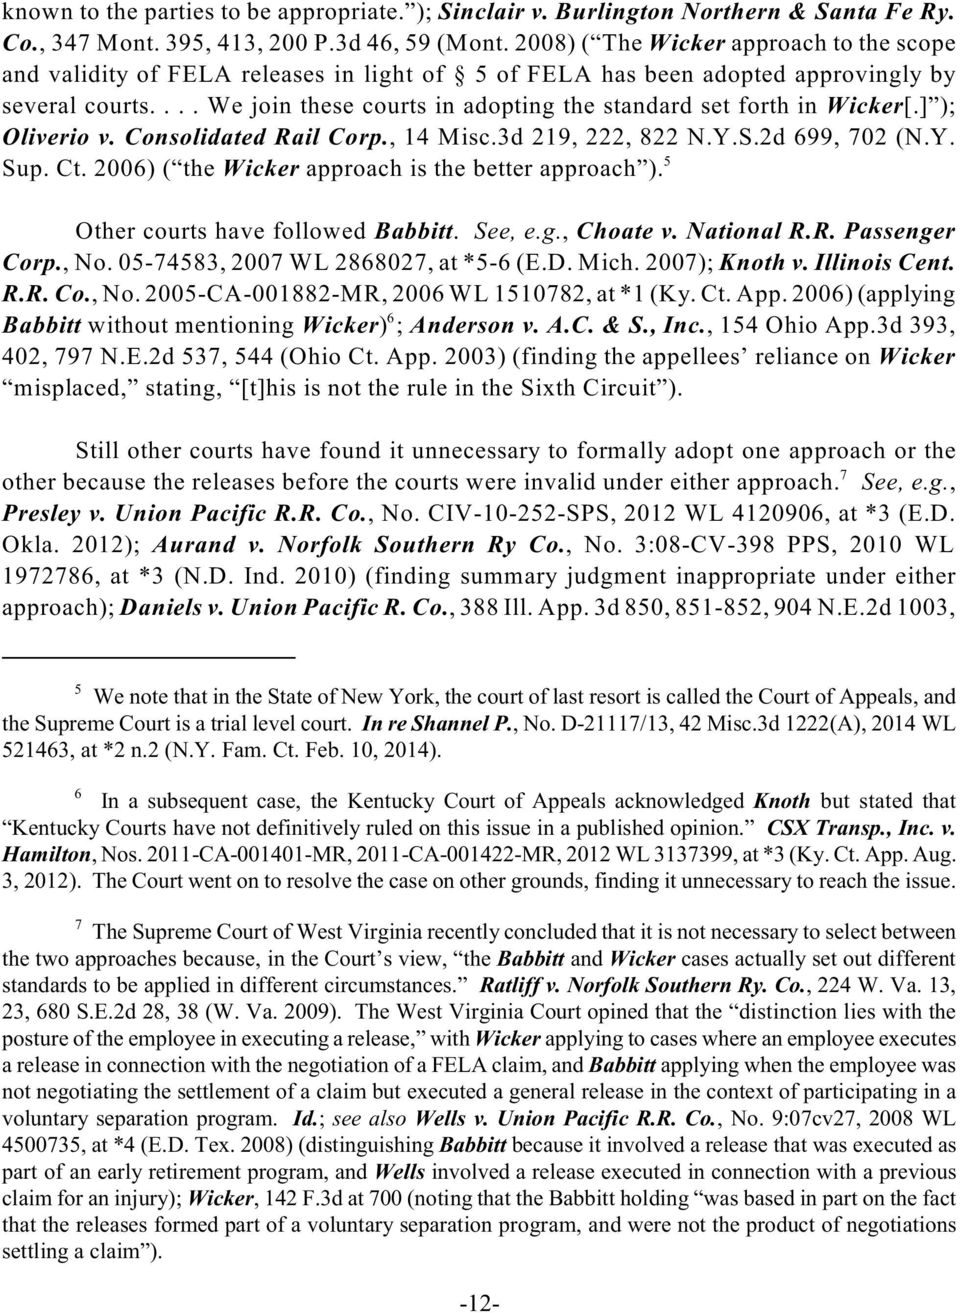 ... We join these courts in adopting the standard set forth in Wicker[.] ); Oliverio v. Consolidated Rail Corp., 14 Misc.3d 219, 222, 822 N.Y.S.2d 699, 702 (N.Y. Sup. Ct.